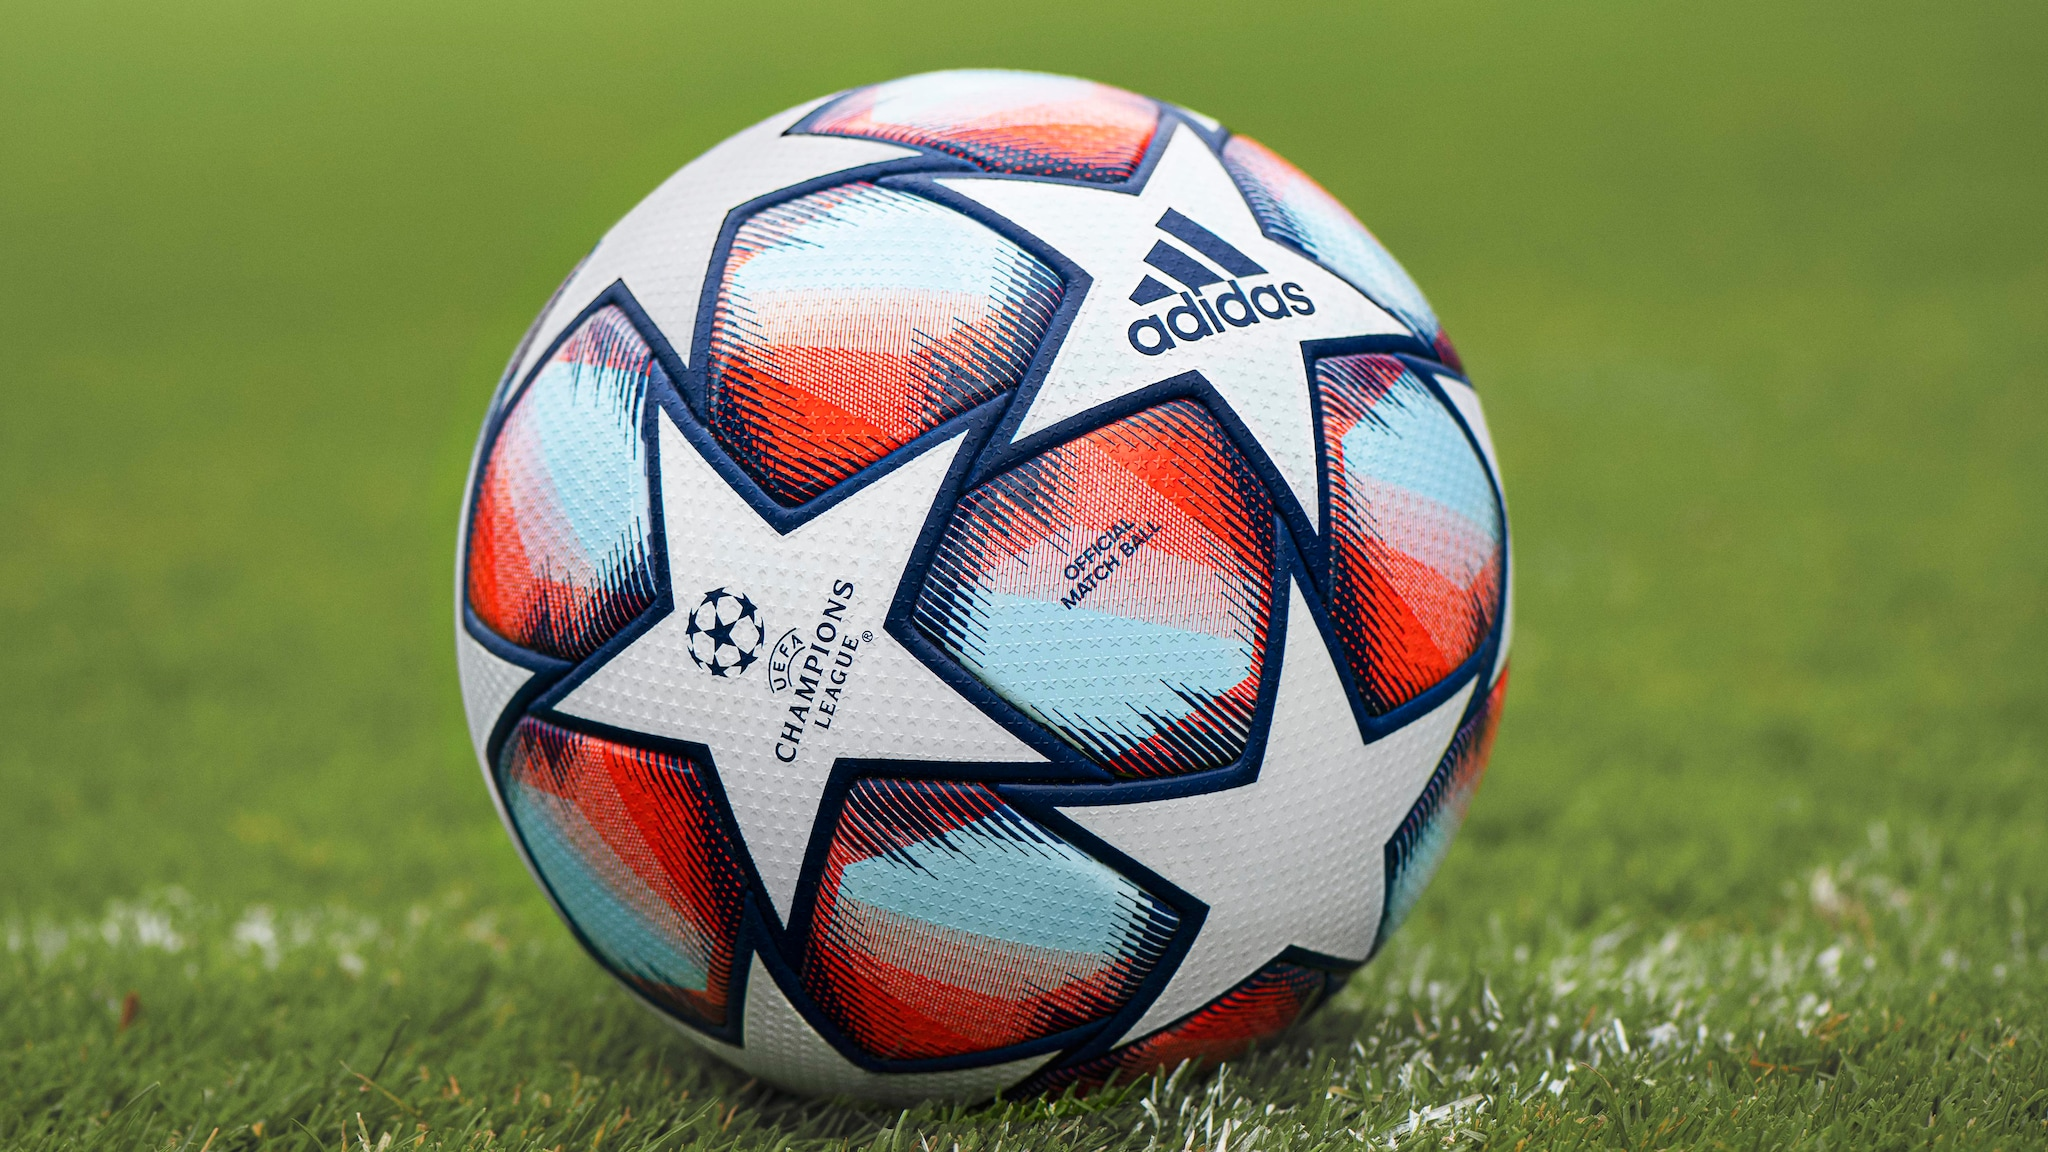 official ball for 2020 21 uefa champions league group stage presented by adidas inside uefa uefa com official ball for 2020 21 uefa